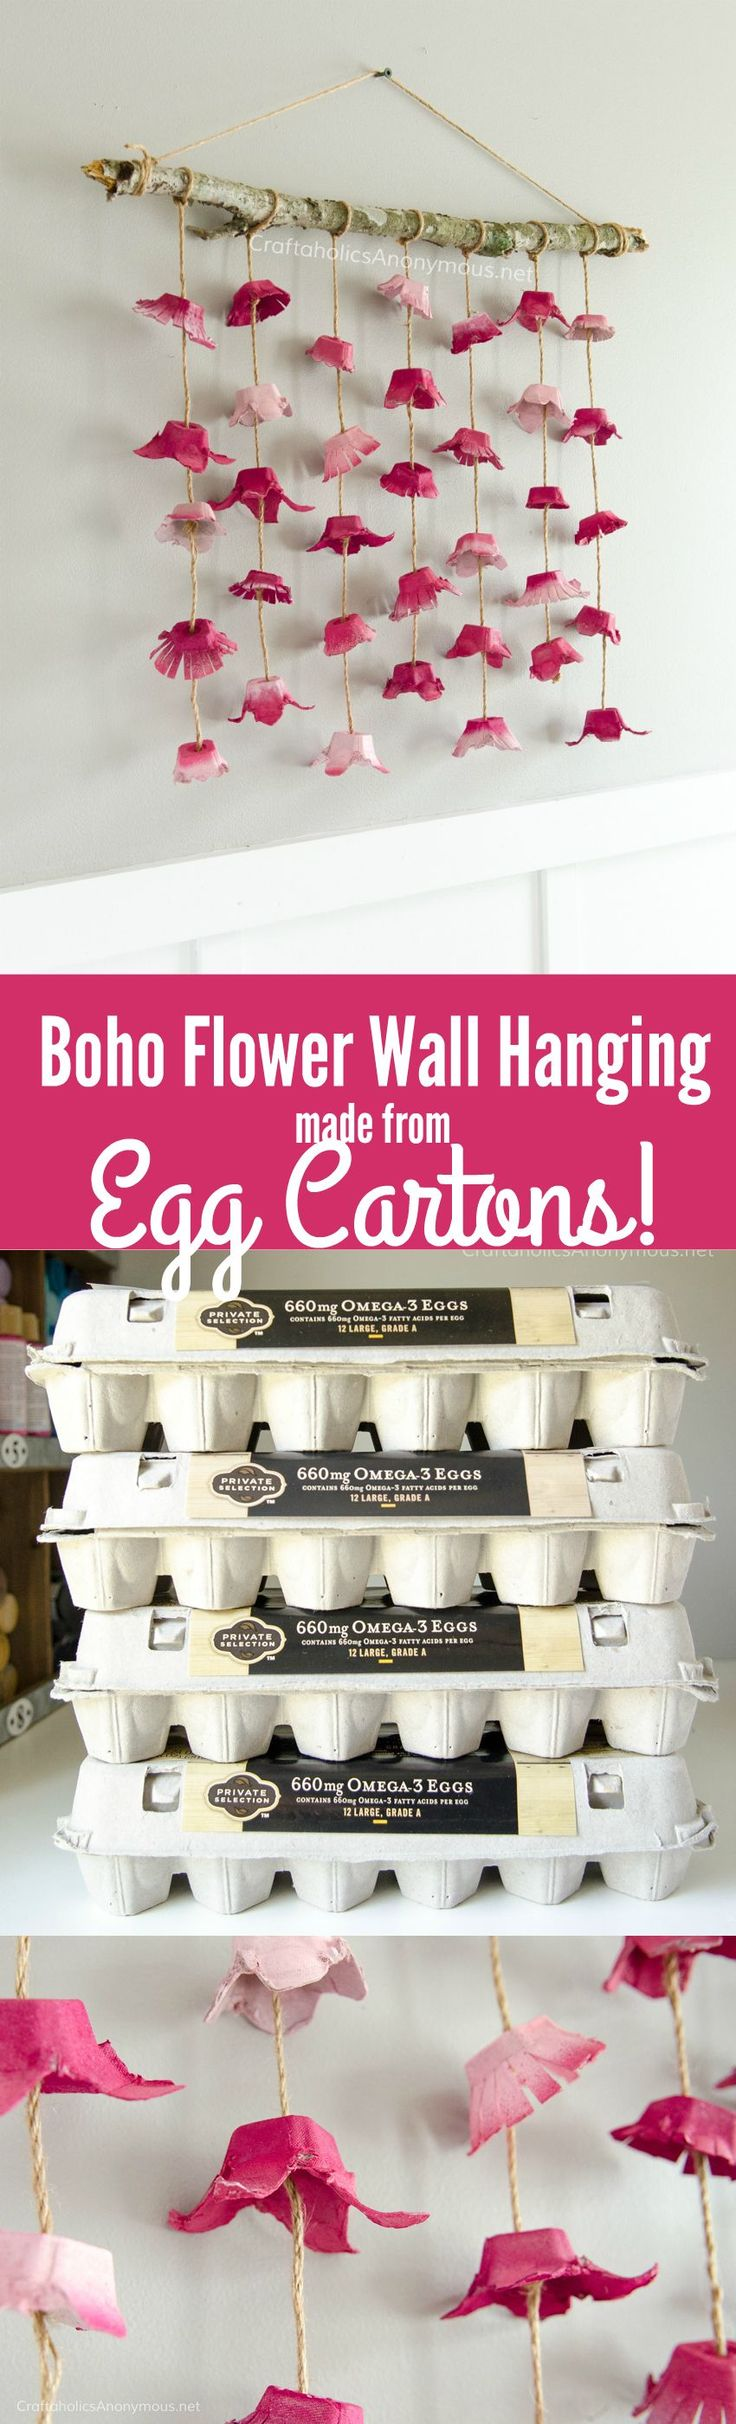 Boho Flower Wall Hanging made from Egg